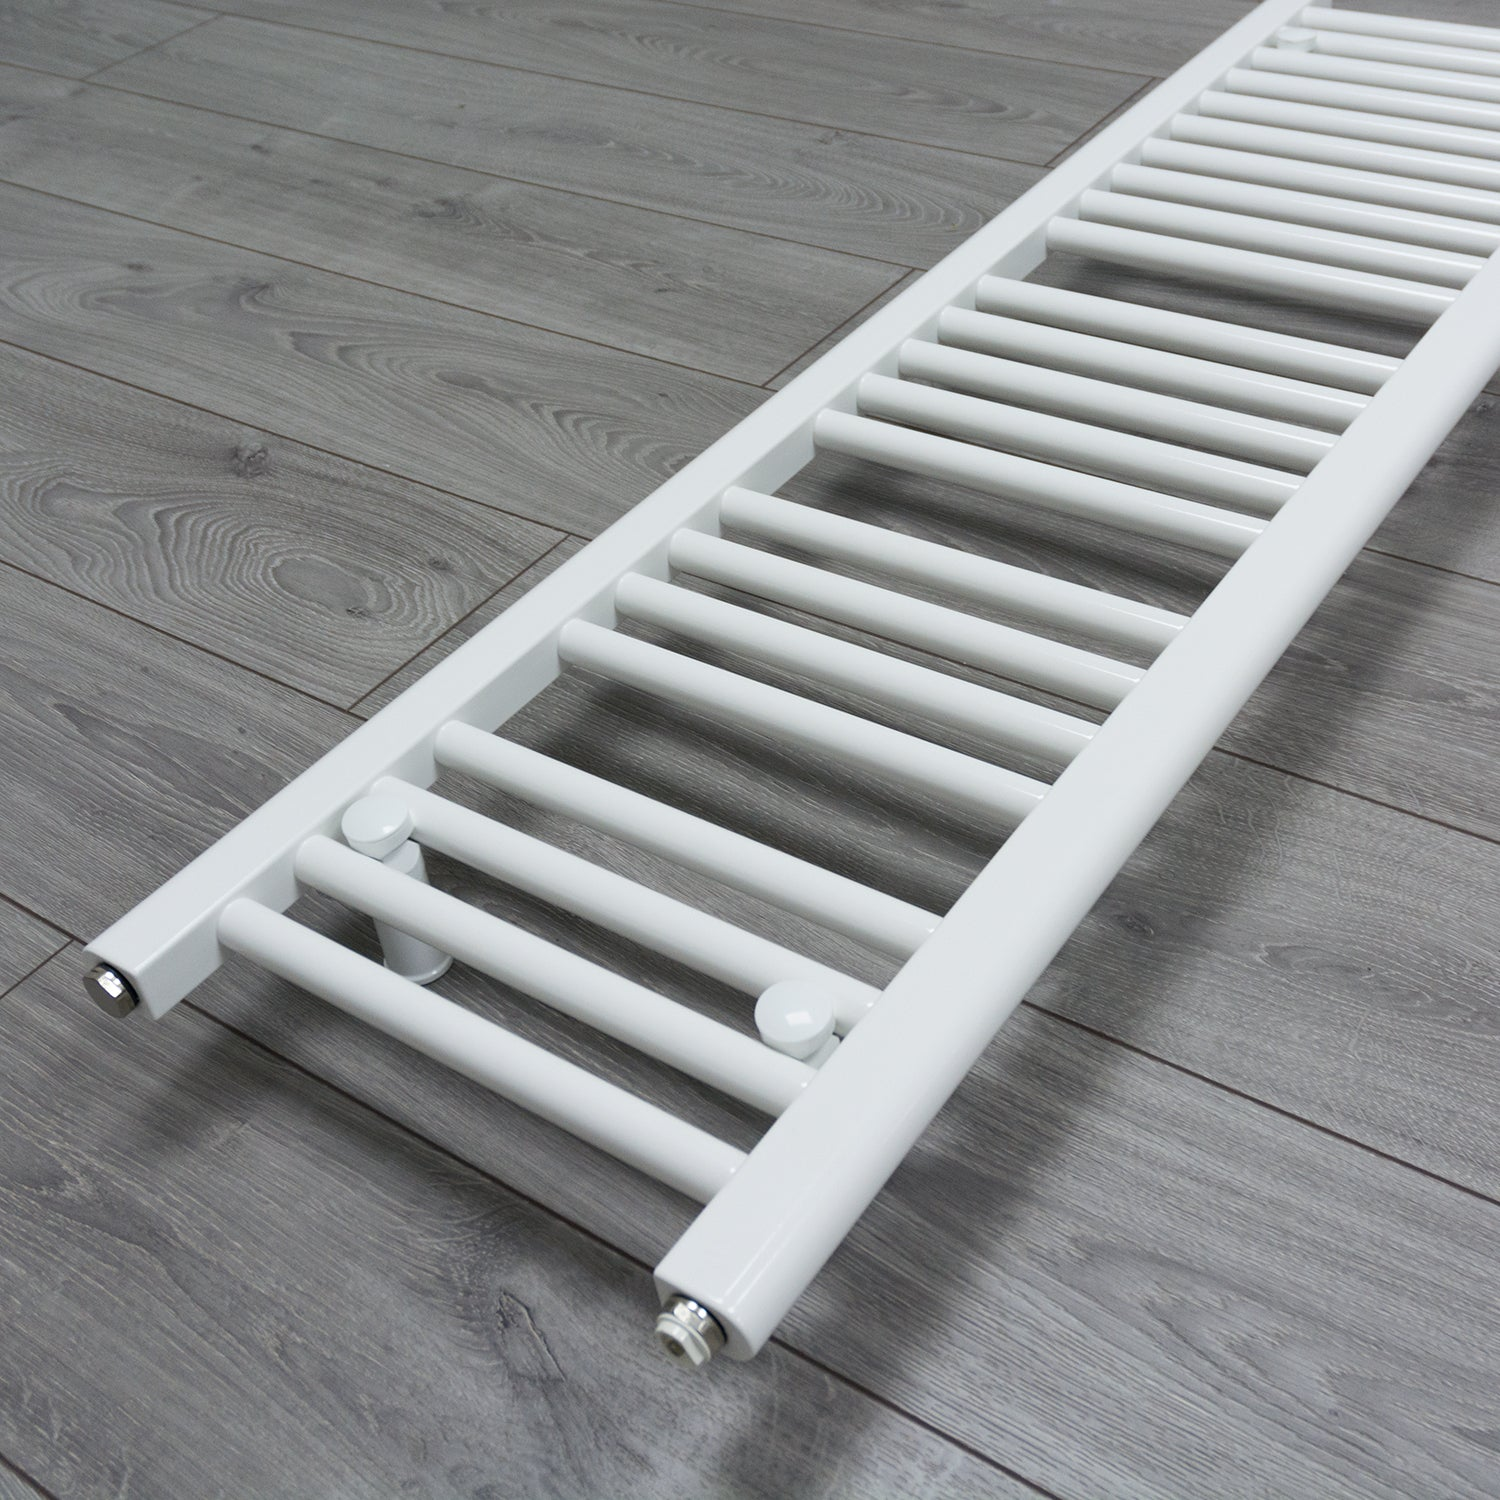 350mm x 1000mm White Heated Towel Rail Radiator Close Up Image